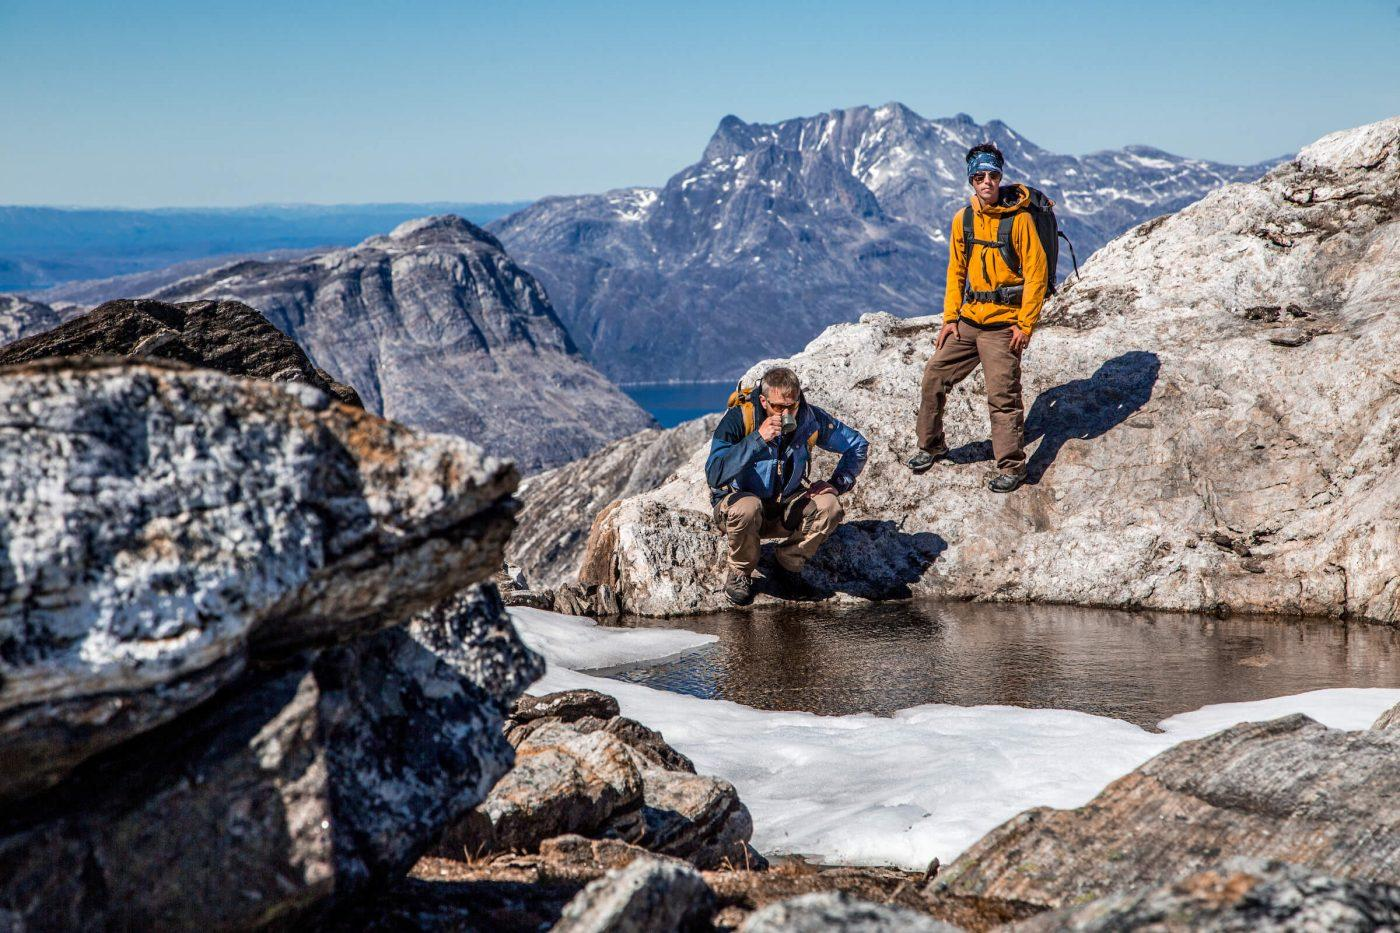 Touring Greenland guide stops for a drink of fresh water from a meltwater pond at the top of Kingittorsuaq mountain outside of Nuuk with a view straight to Sermitsiaq mountain. Raven Eye Photography